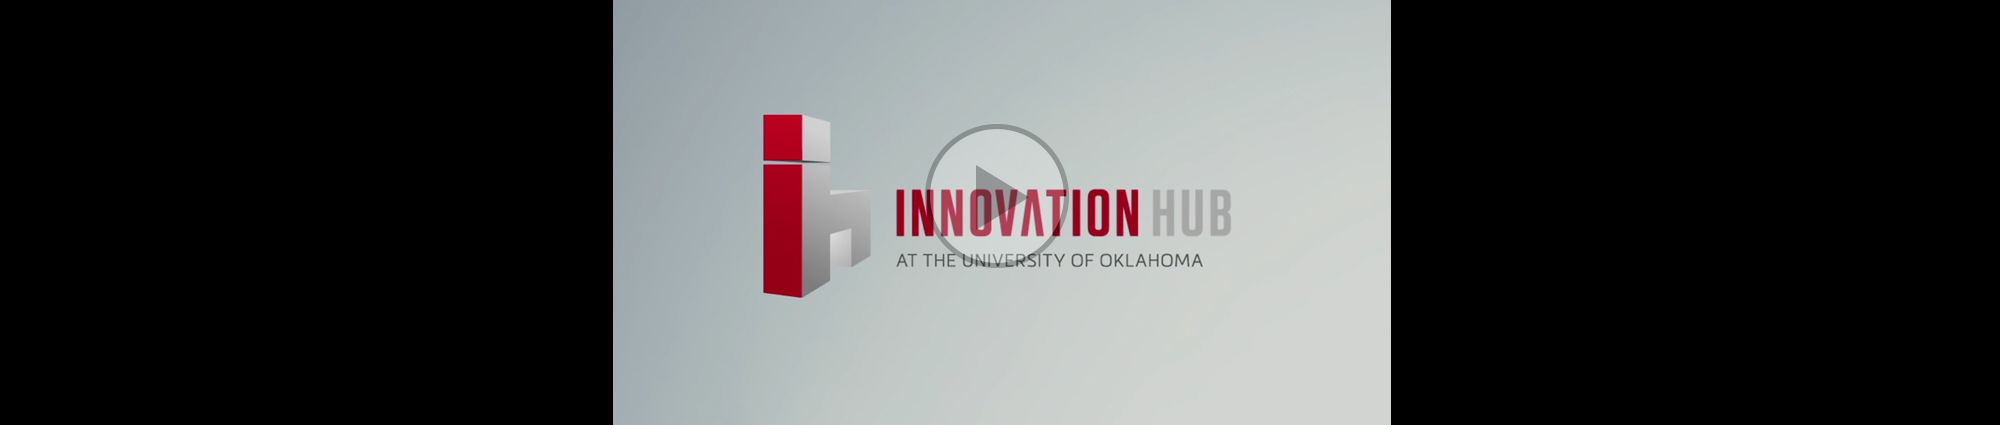 Introducing the Innovation Hub